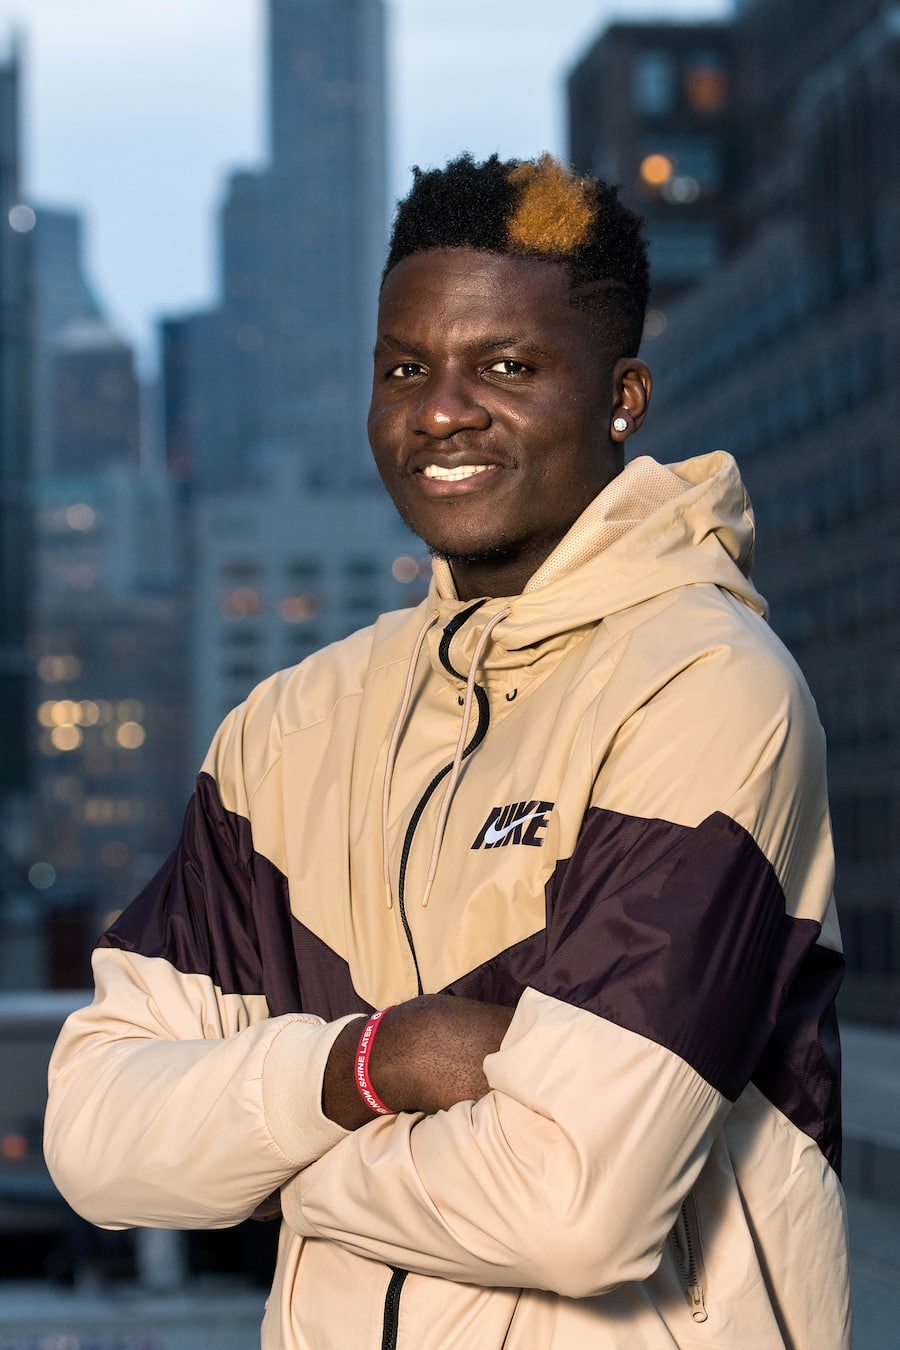 Clint Capela, Swiss professional basketball player for the Houston Rockets of the National Basketball Association (NBA), poses during a photo session in Manhattan, New York City, NY, USA, Thursday November 1st, 2018. (KEYSTONE/Dominic Favre)